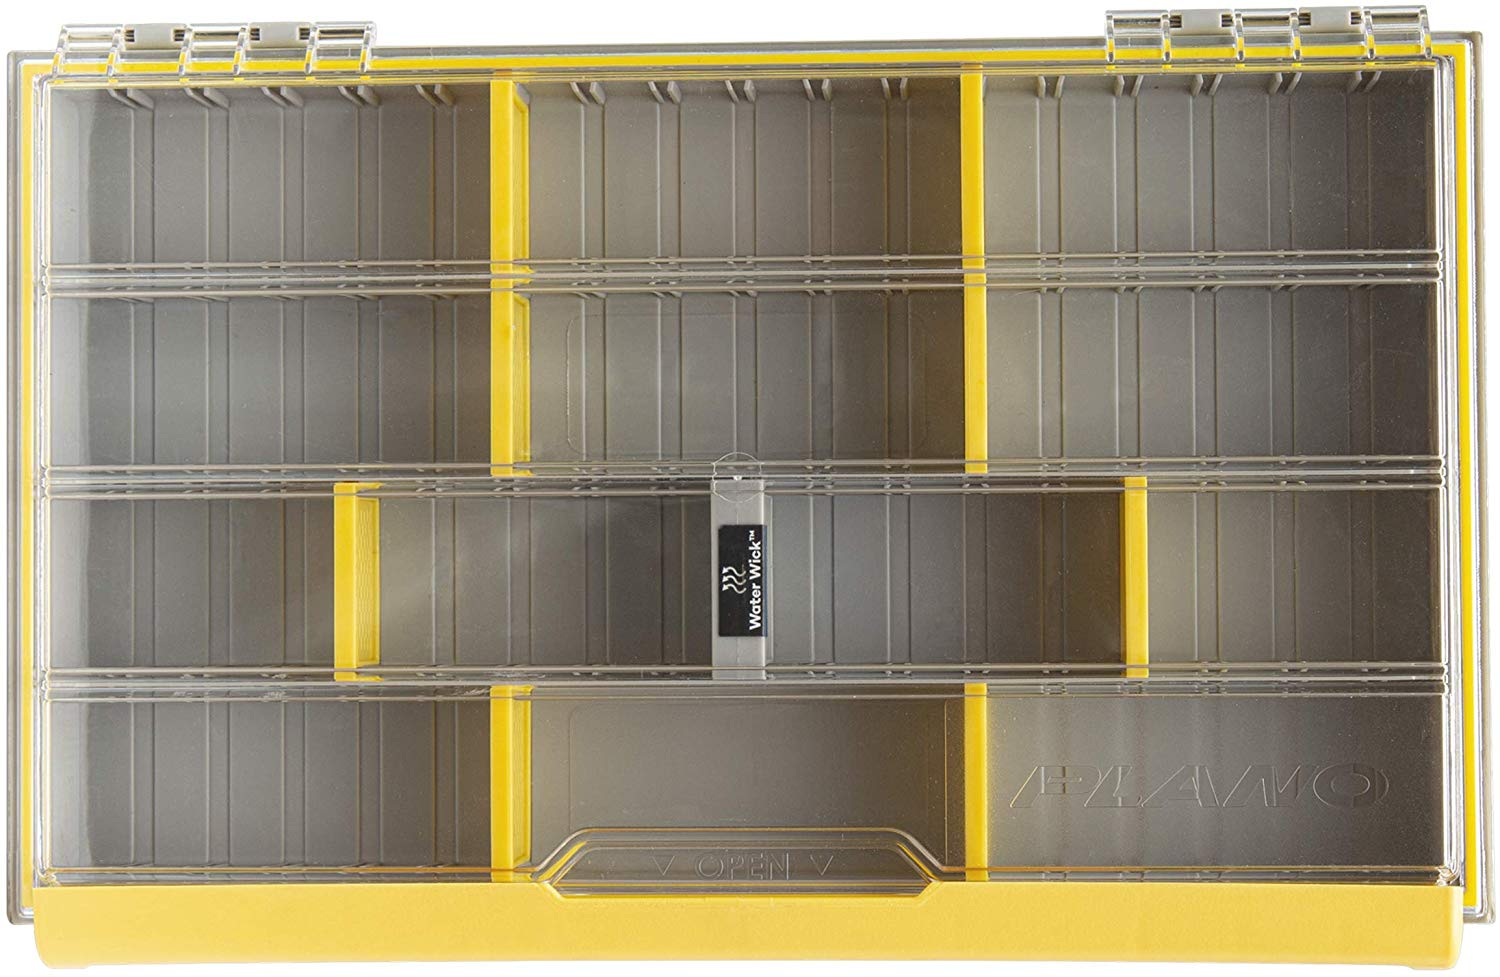 Details about  /Plano Edge Professional 3600 Standard Tackle Storage Premium Organization With